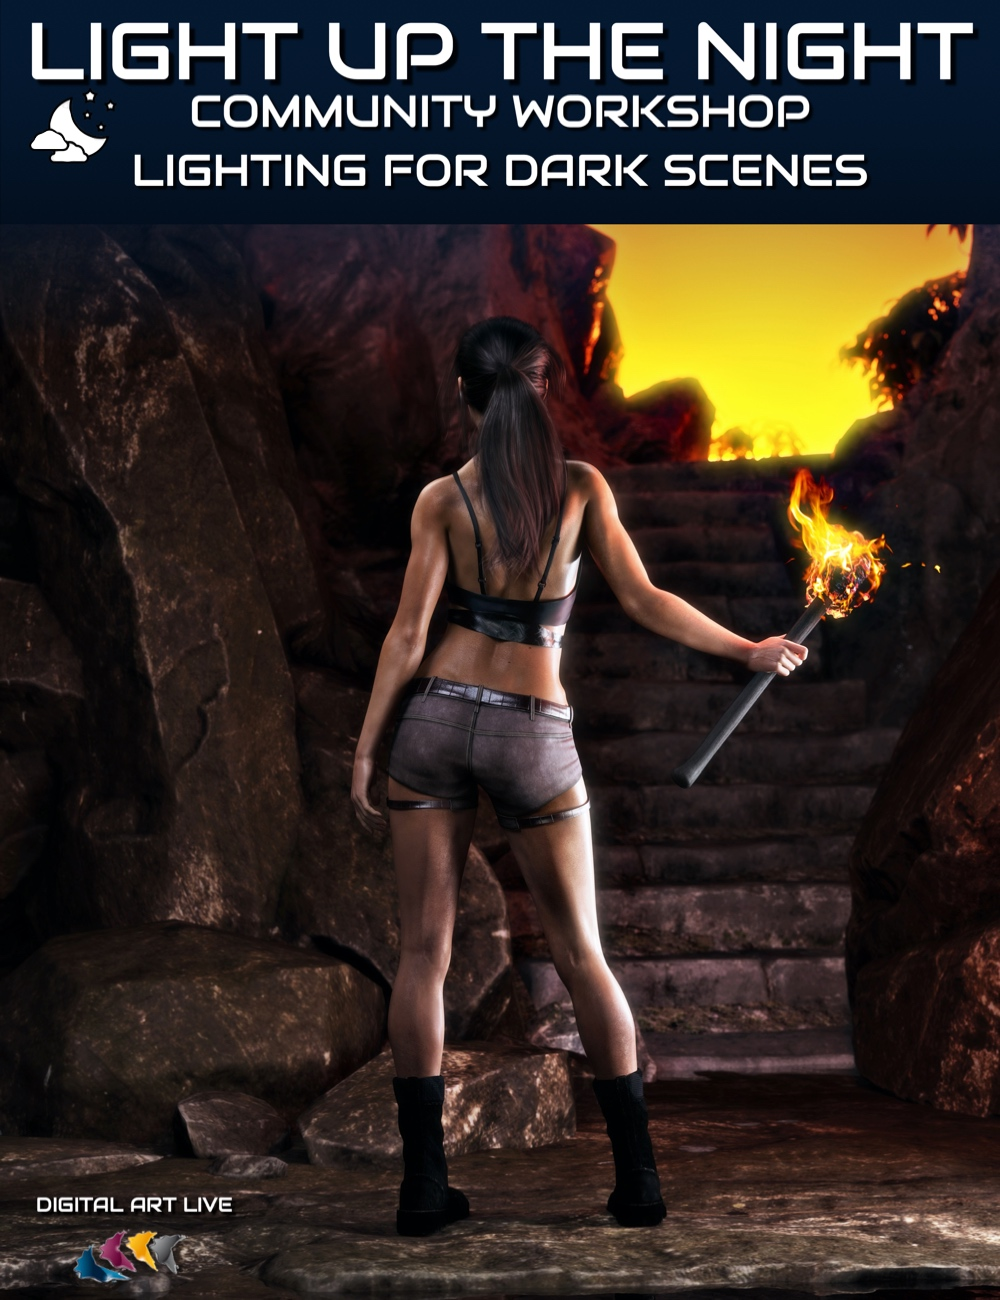 Lighting Up the Night: Special Lighting for Dark Scenes by: Digital Art Live, 3D Models by Daz 3D